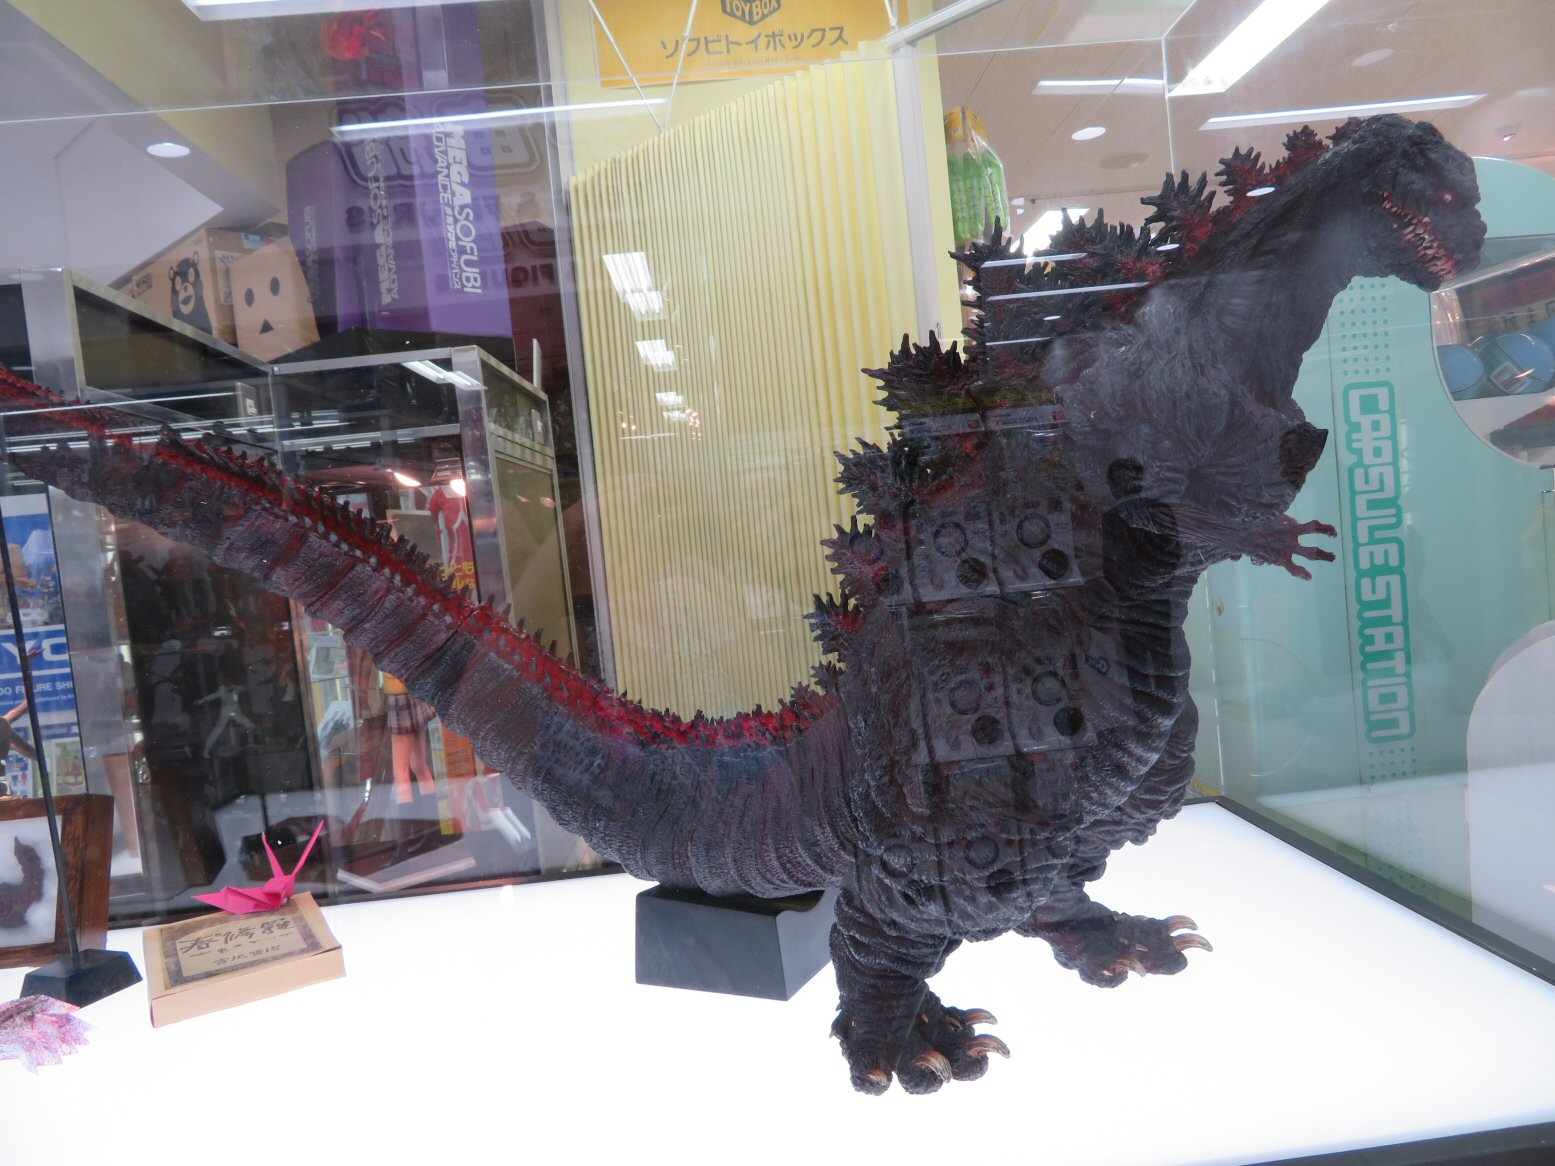 Godzilla under glass